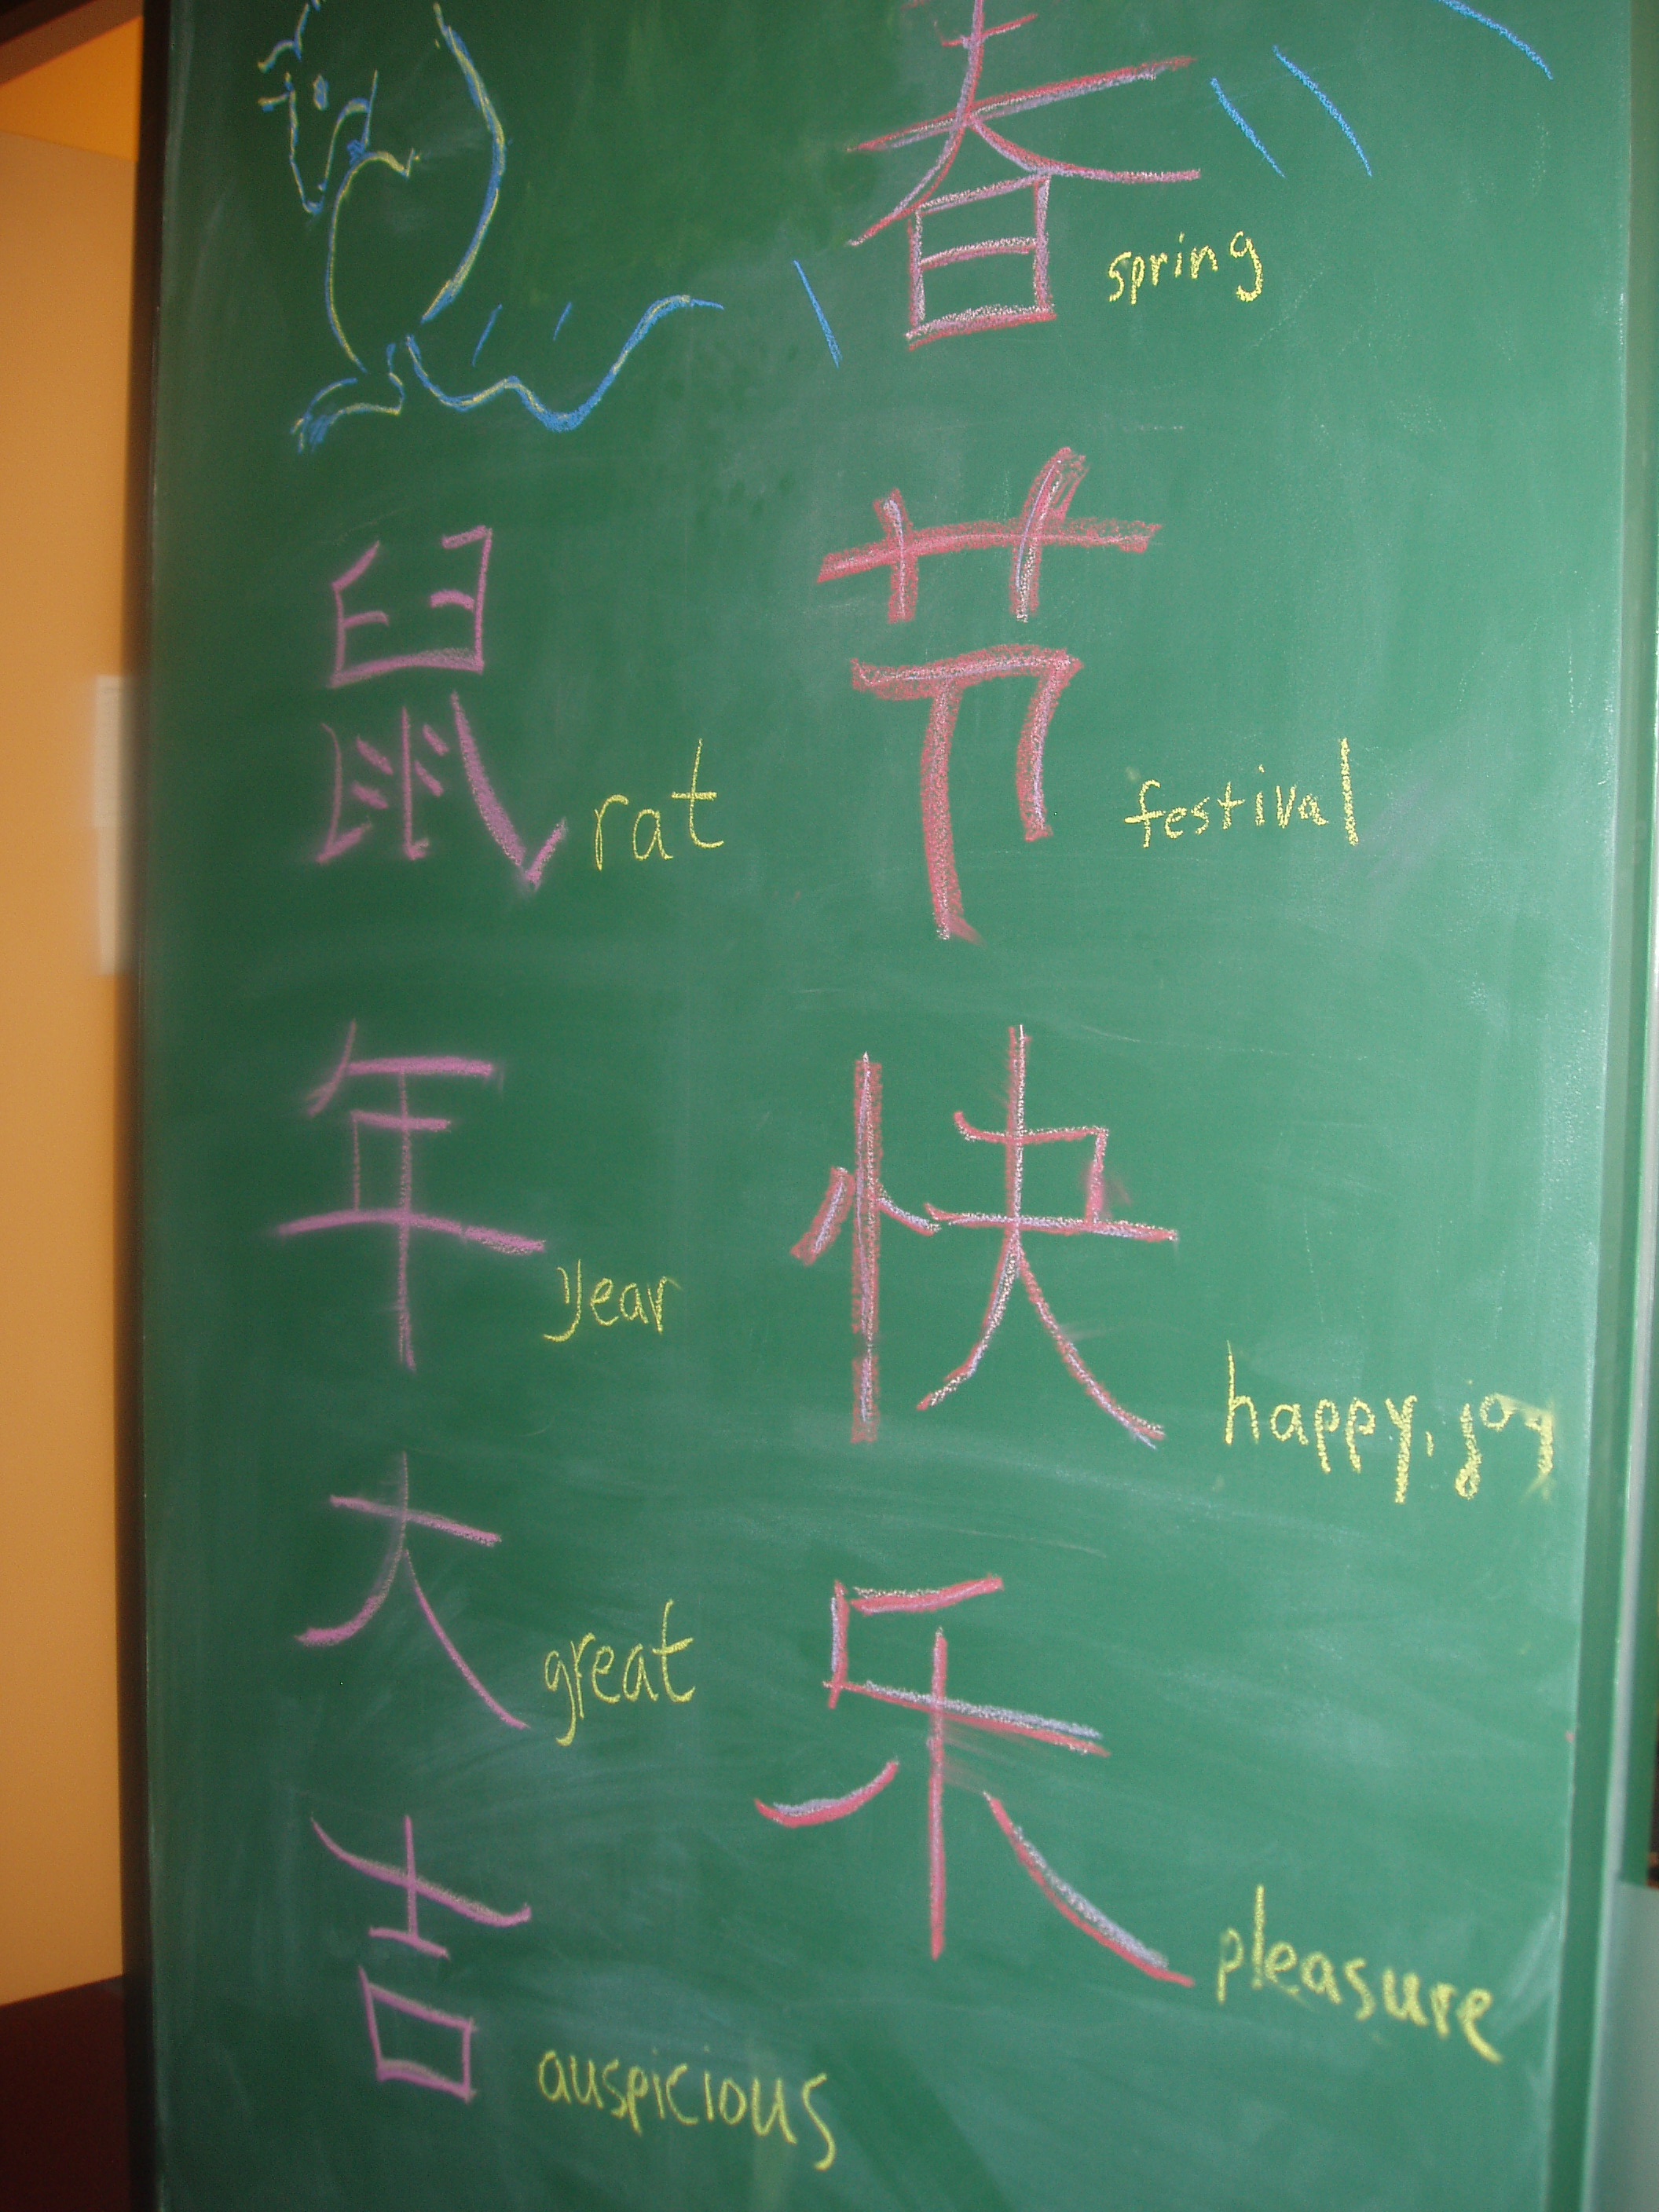 Many Chinese characters were